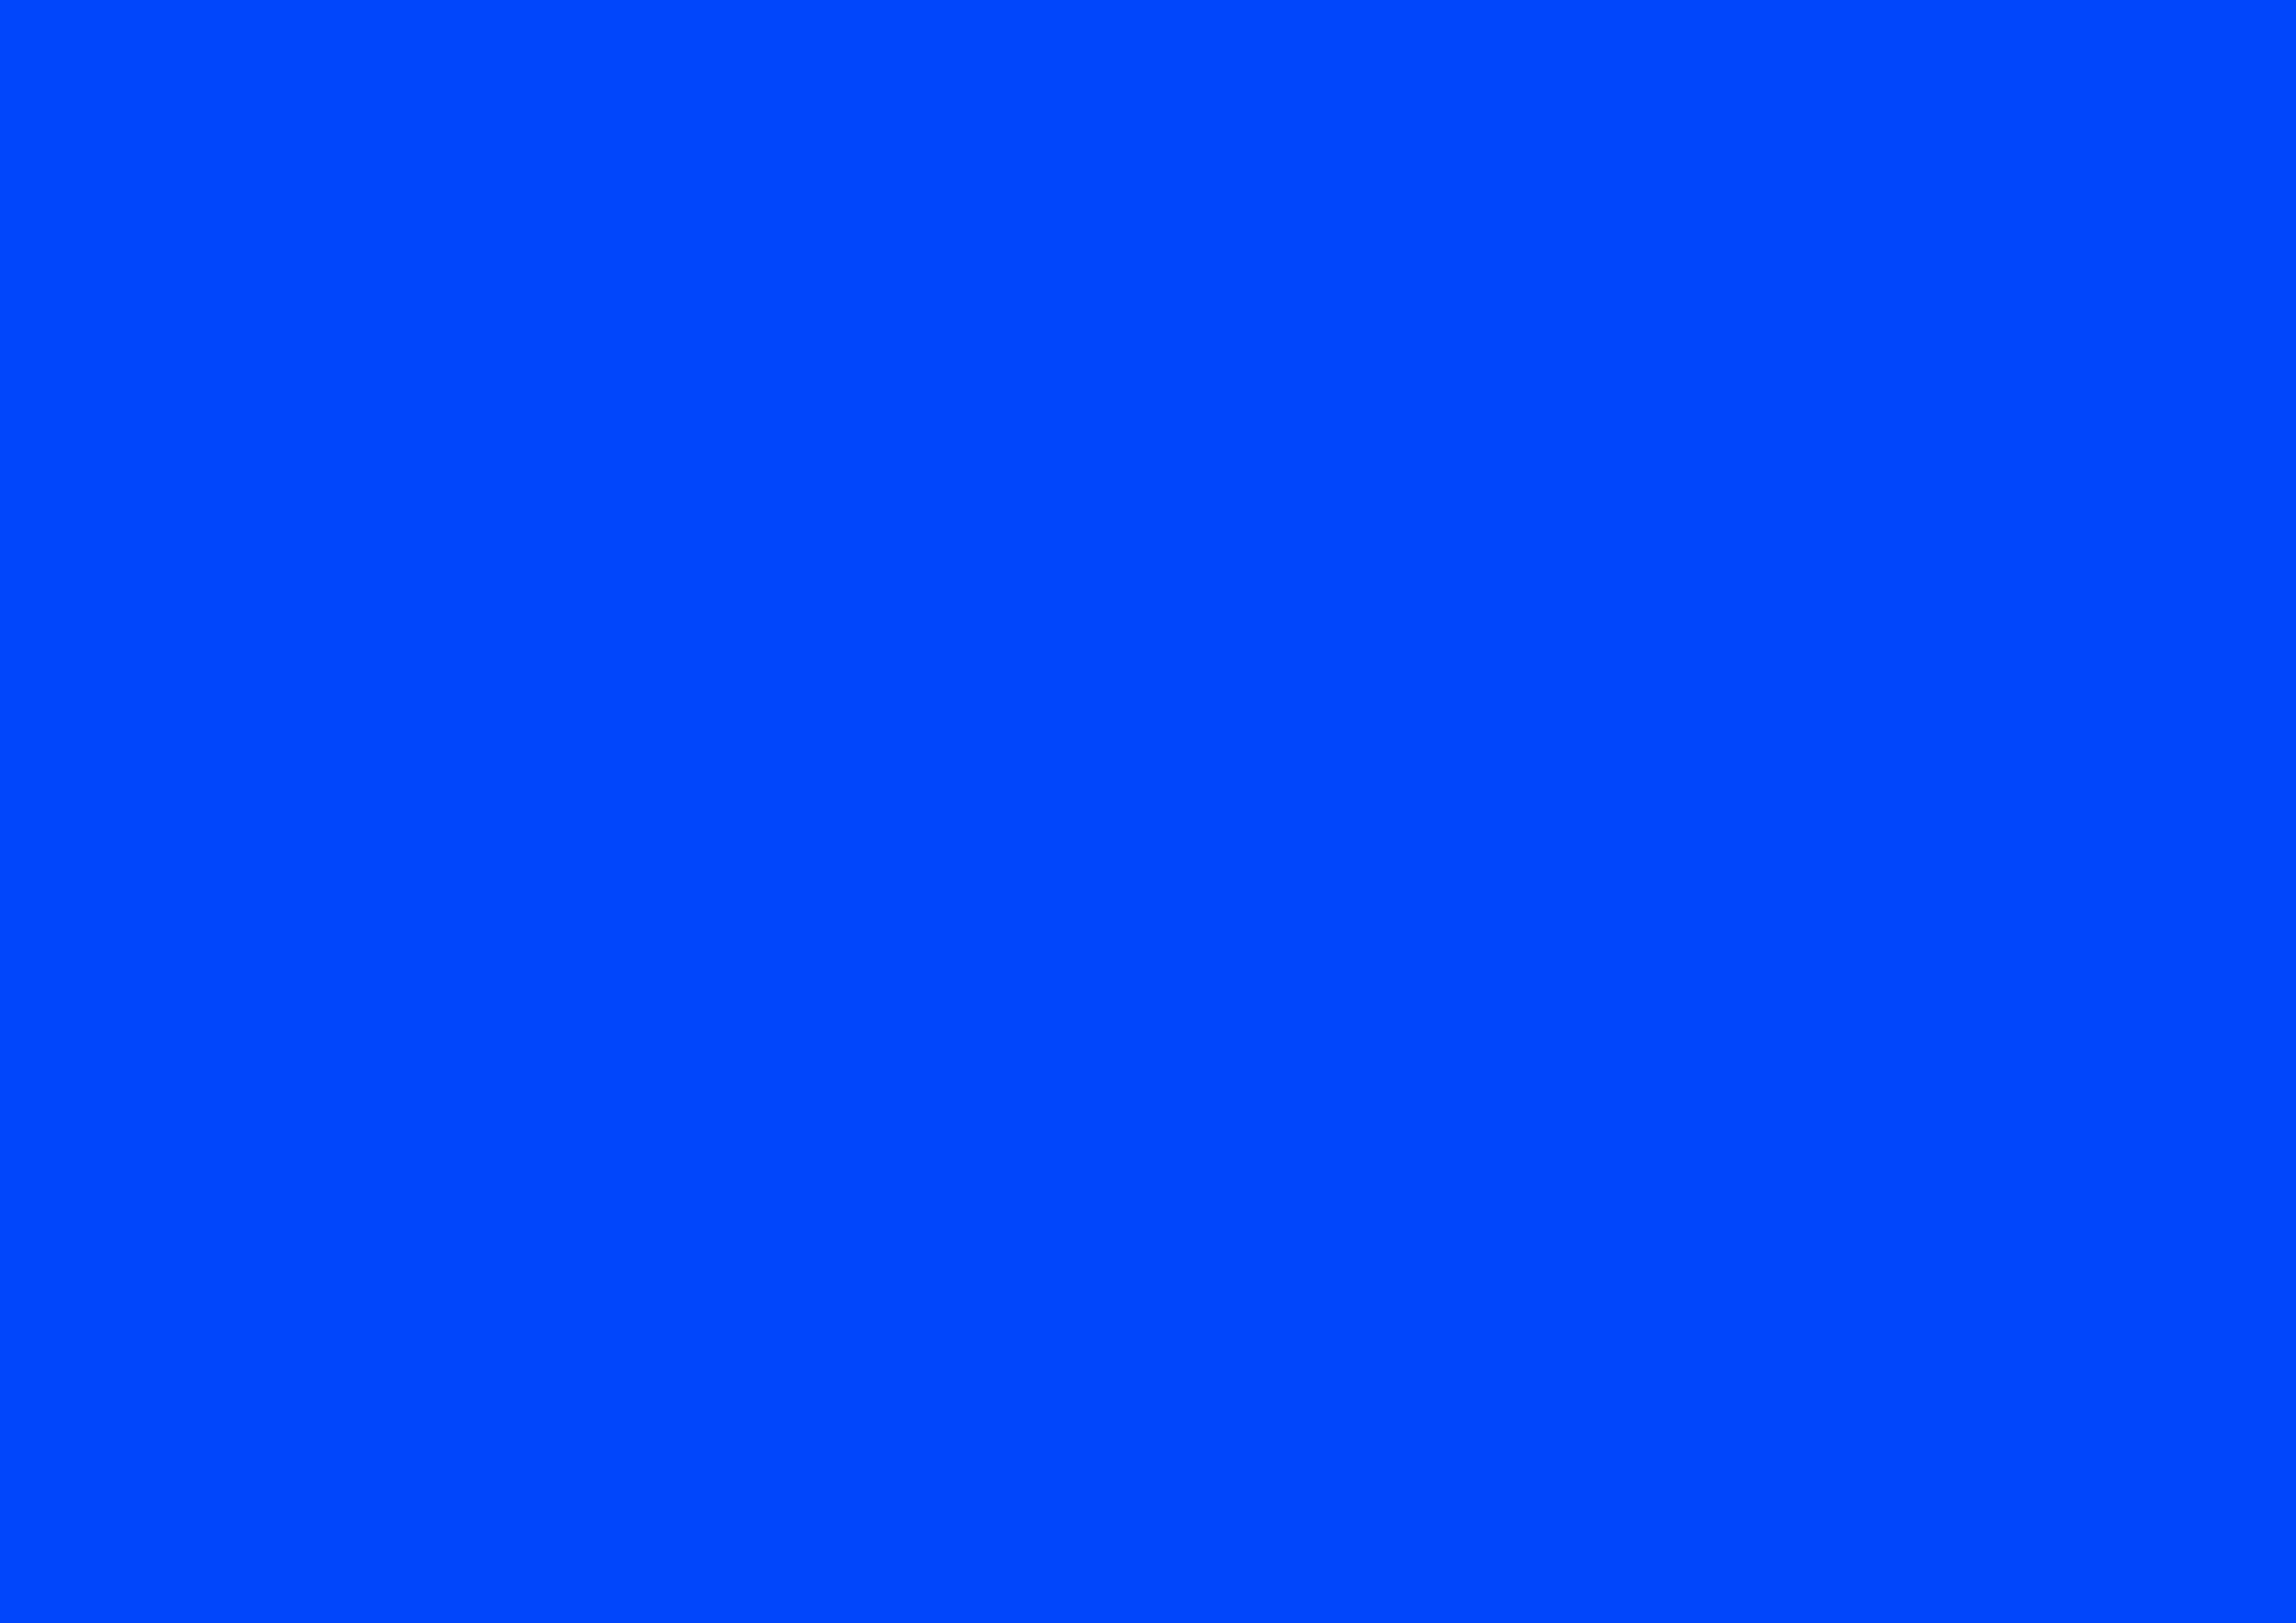 3508x2480 Blue RYB Solid Color Background